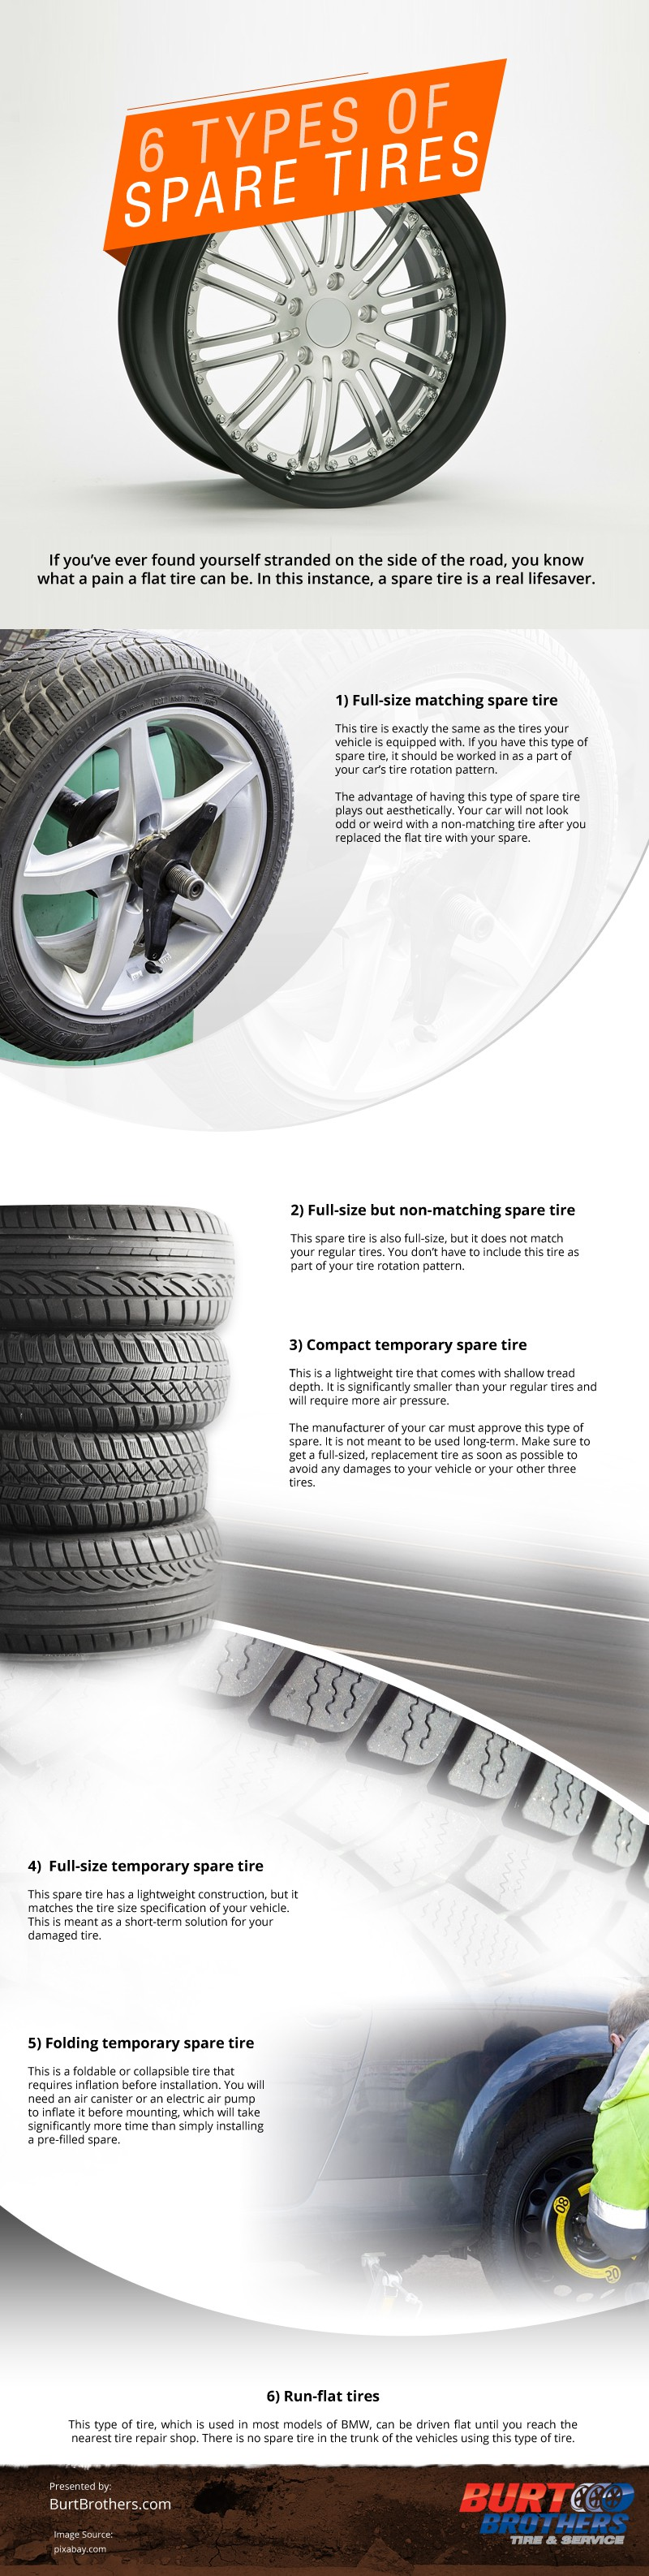 6 Types of Spare Tires Infographic